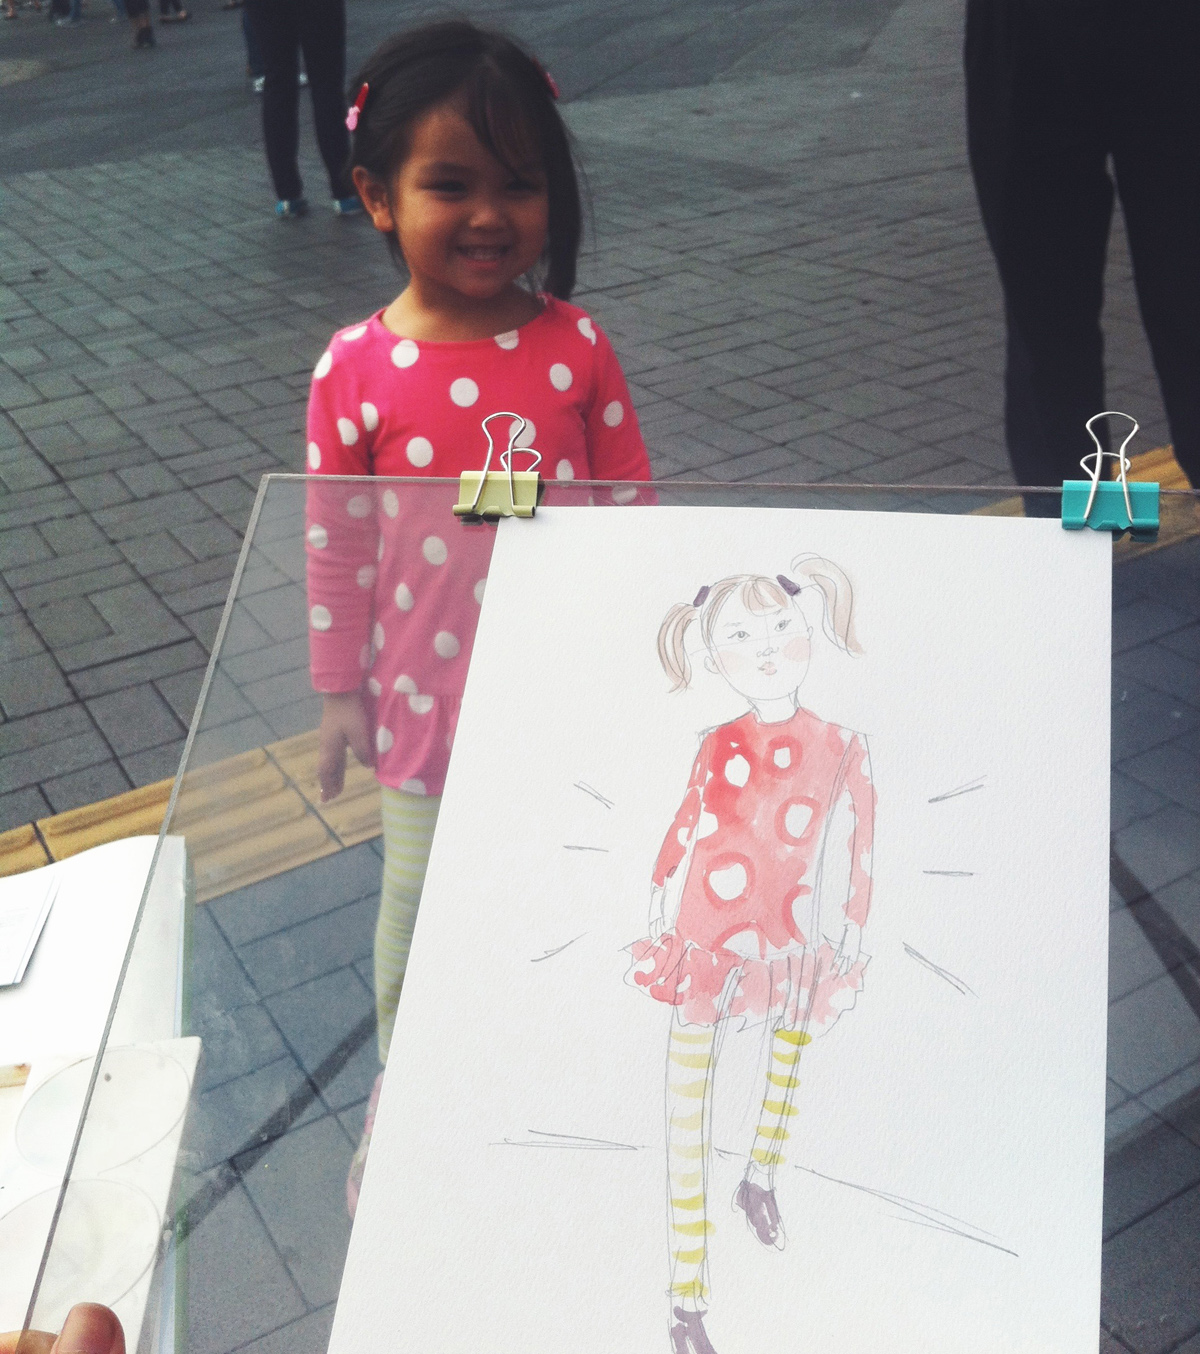 Kitty N. Wong / Live sketch in Hong Kong of little girl in pink polkadots